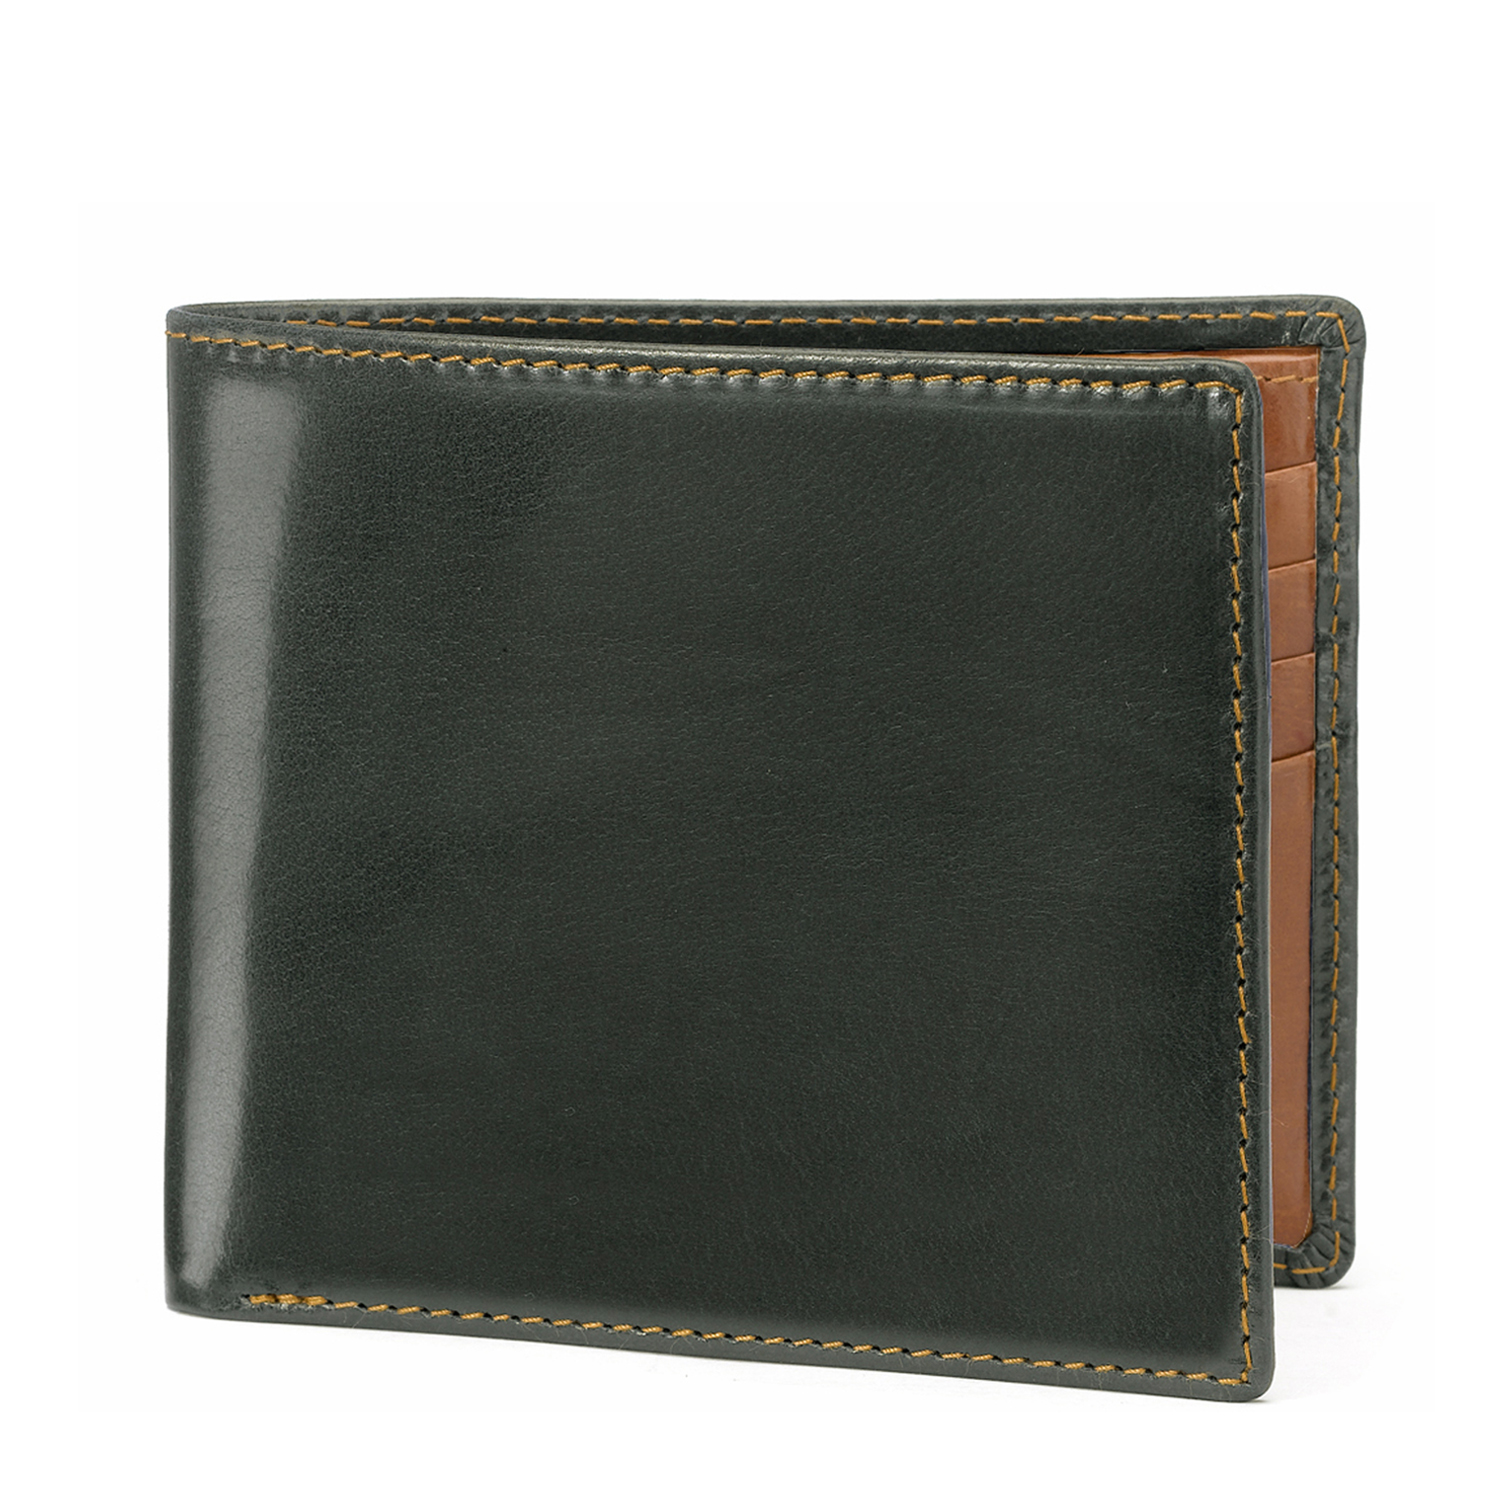 Tusting Green and Tan Leather Wallet